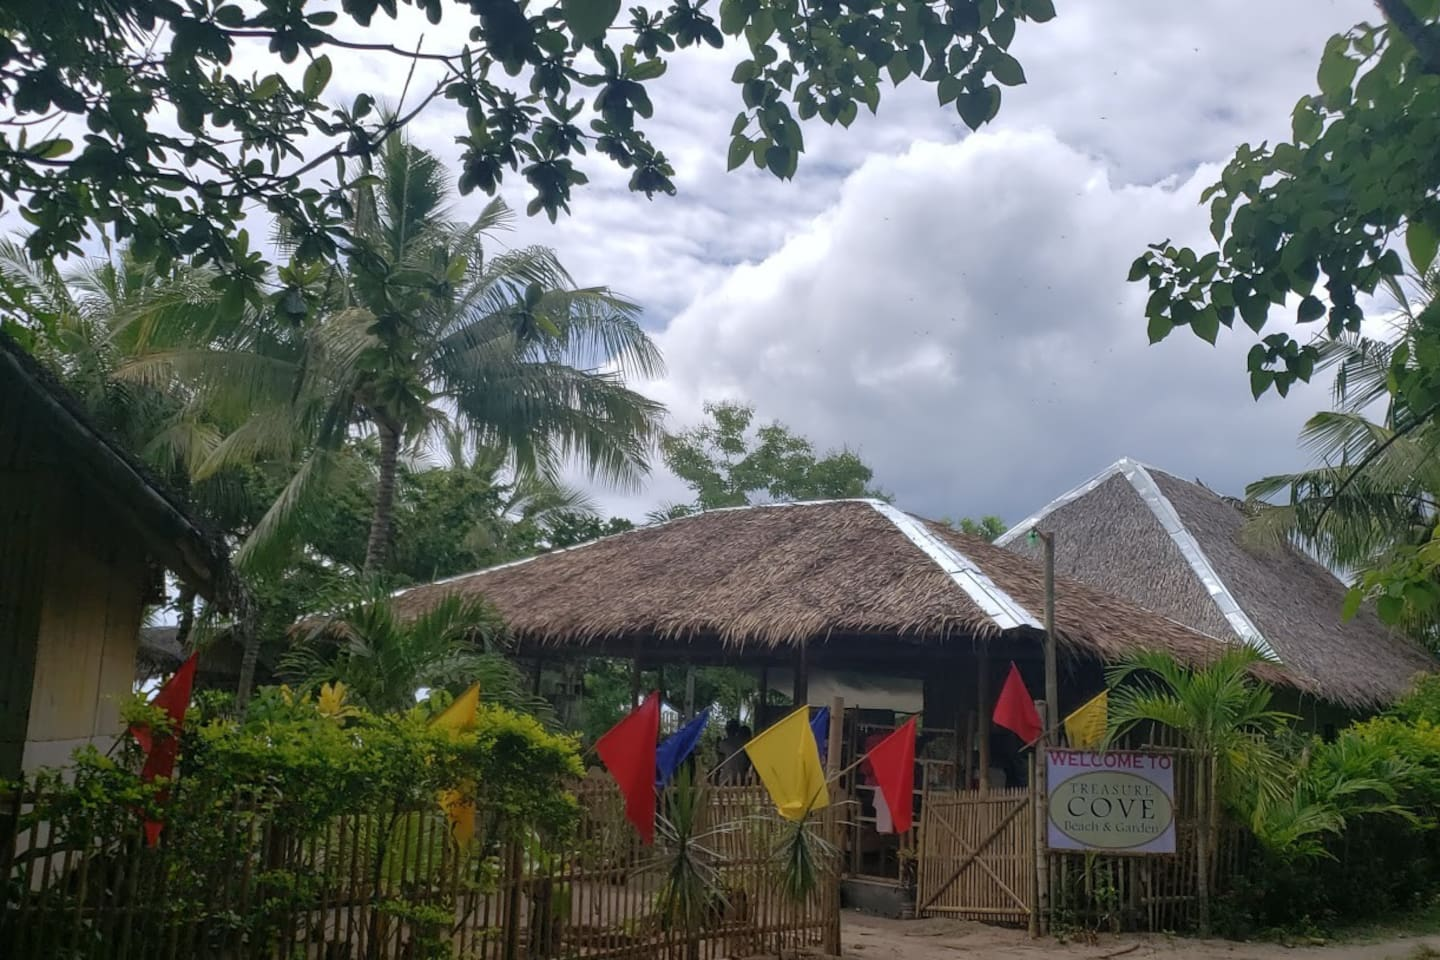 Your entrance to the resort. Welcome to Treasure Cove. A traditional Nipa and bamboo lodge offers a full service restaurant. Request a freshly caught seafood and very sweet mangoe during your stay.